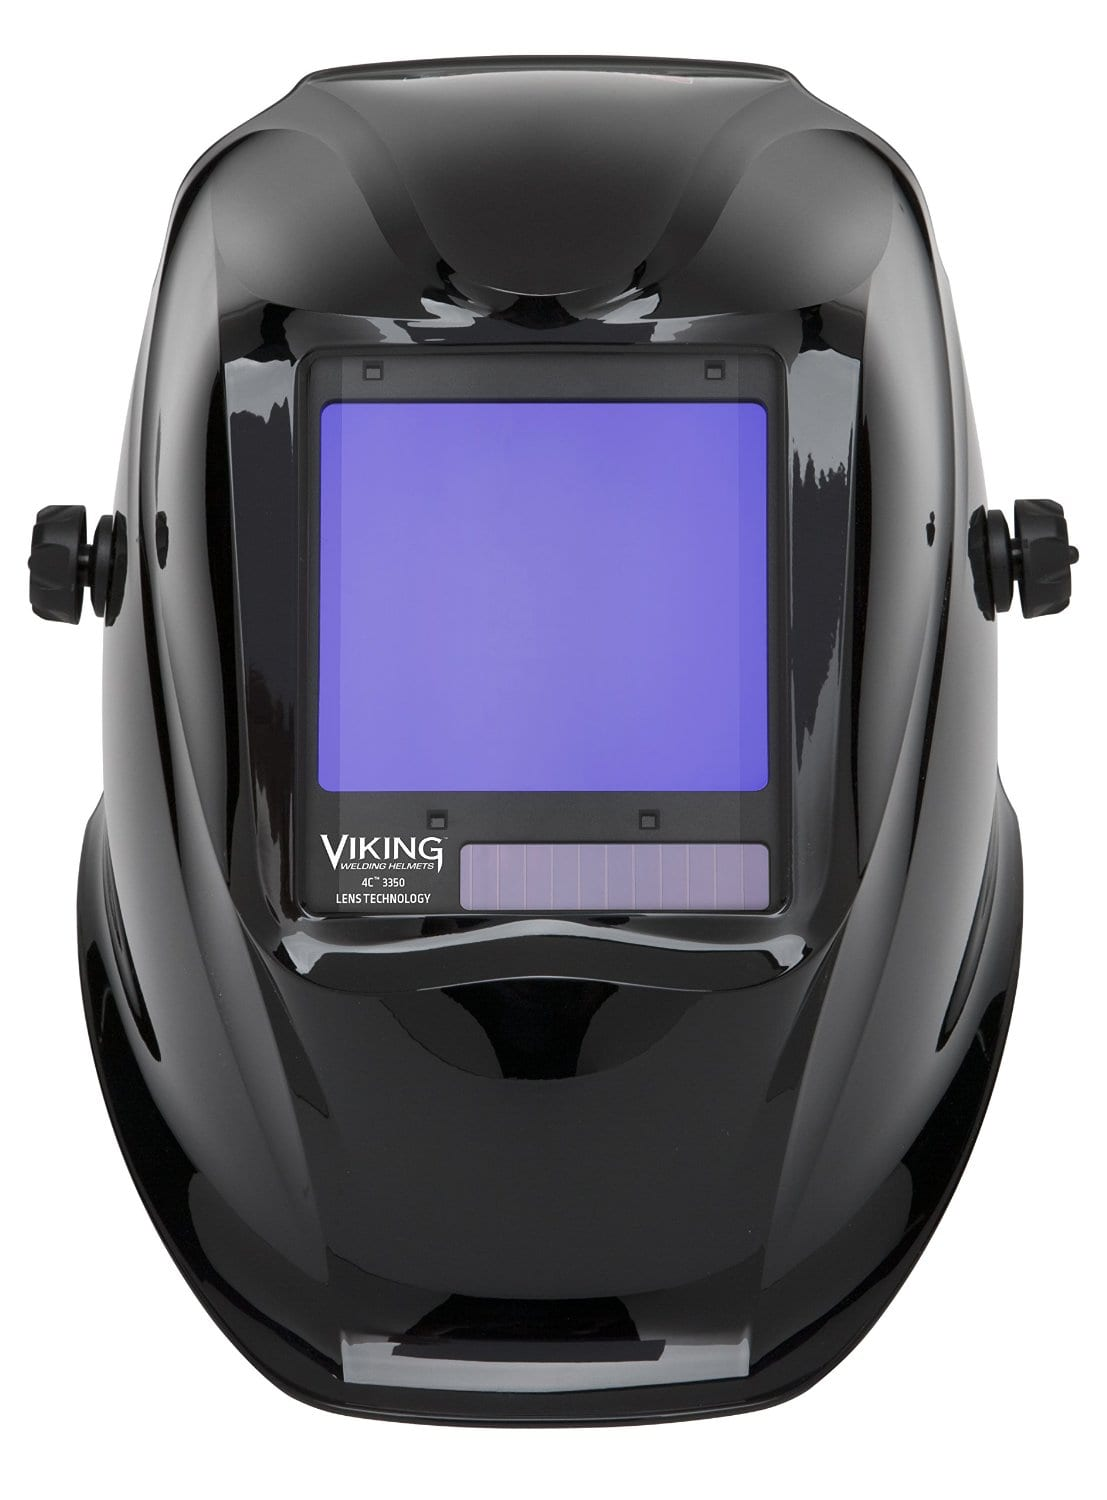 Lincoln Electric VIKING 3350 Black Welding Helmet with 4C Lens Technology - K3034-3 Review